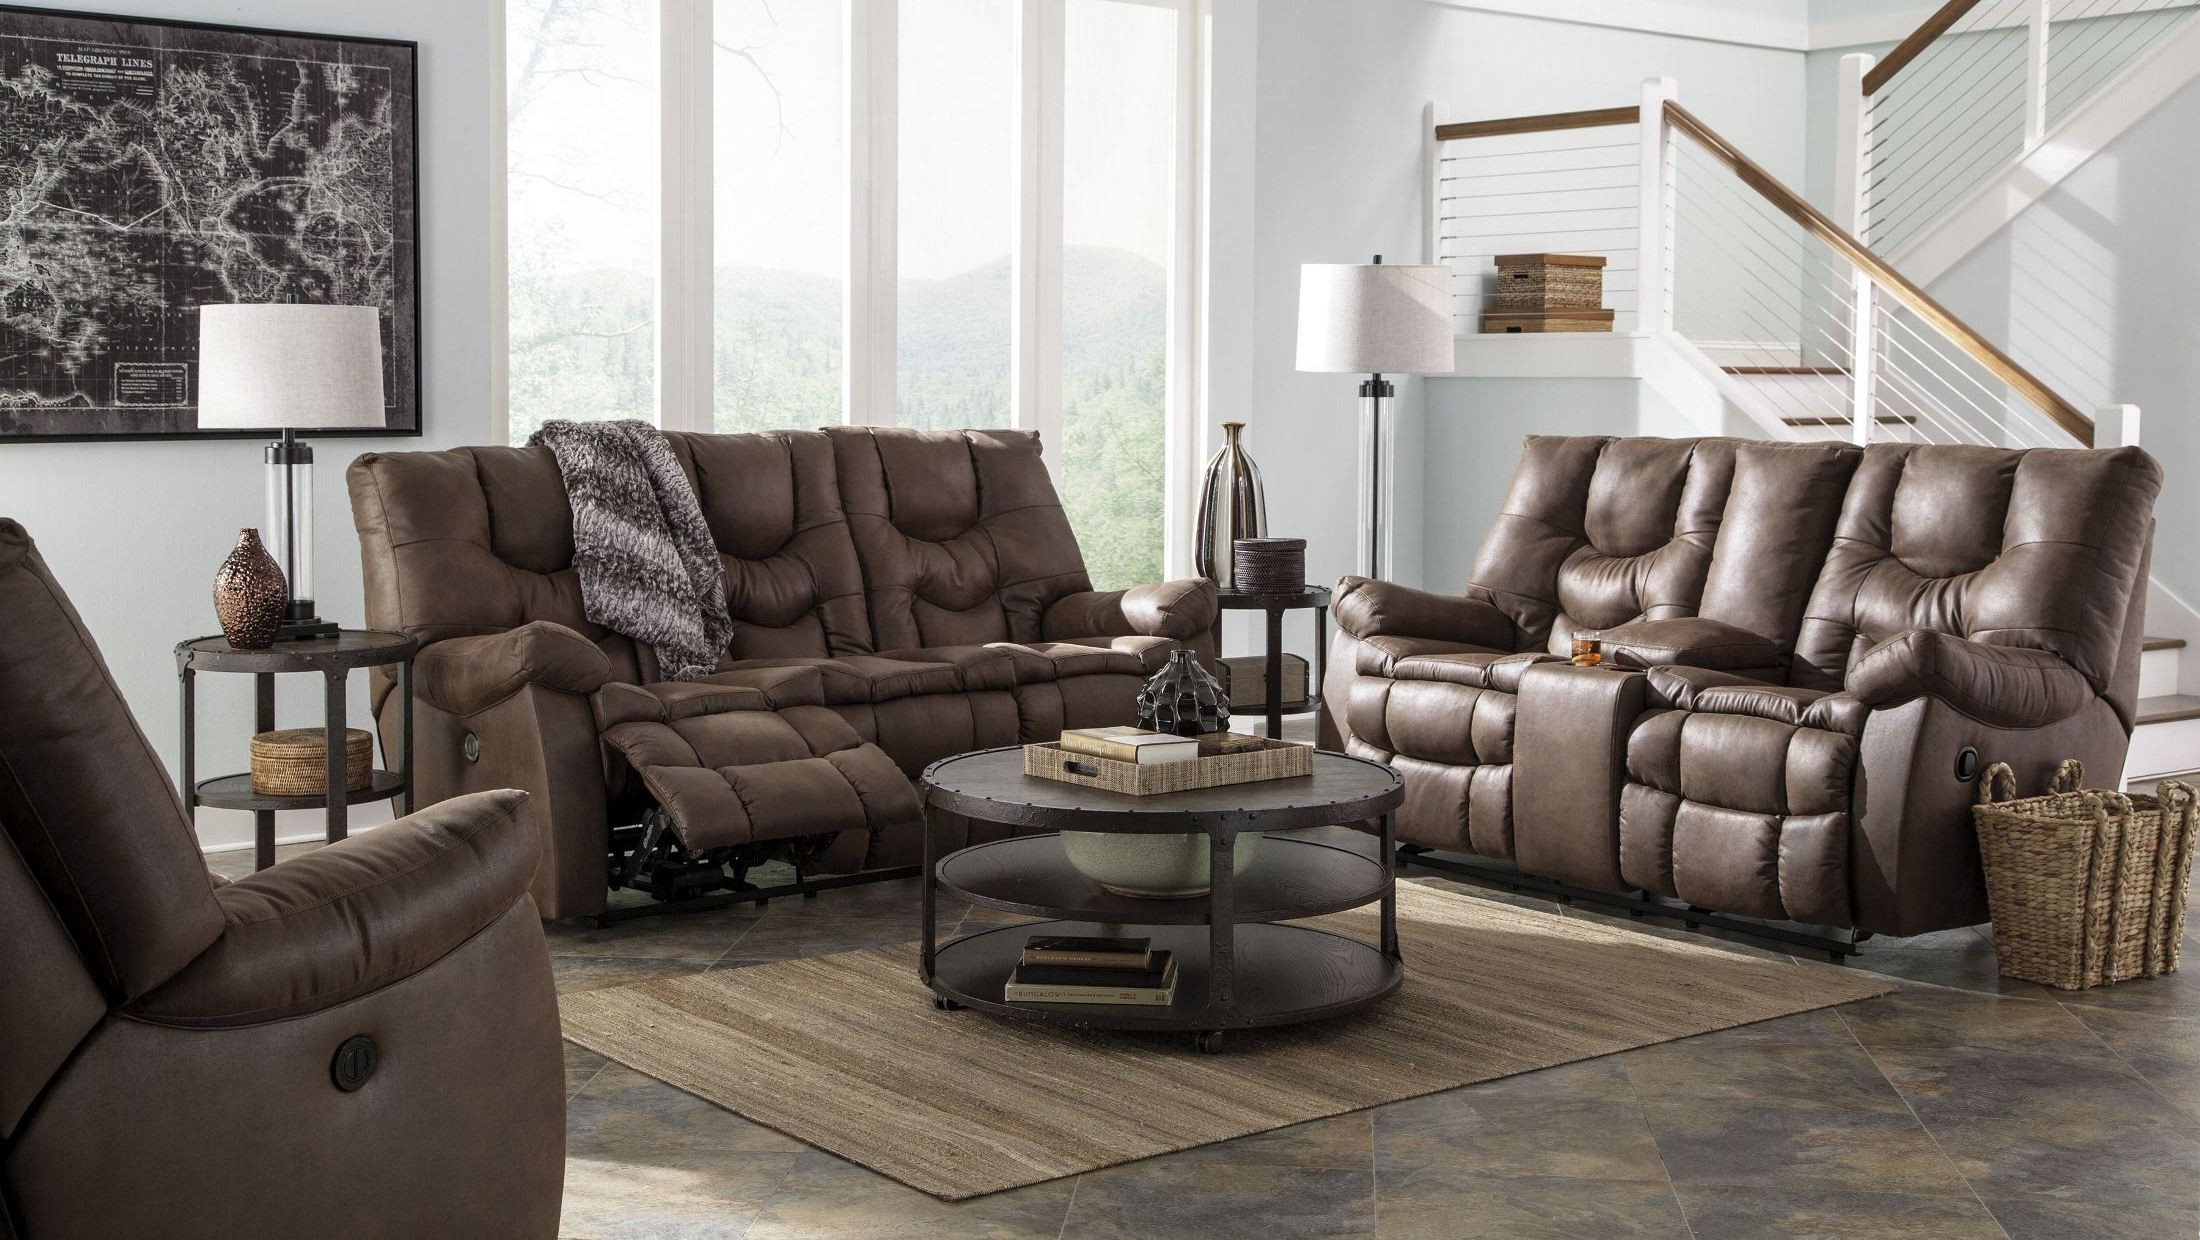 Burgett Espresso Reclining Power Reclining Living Room Set From Ashley 92201